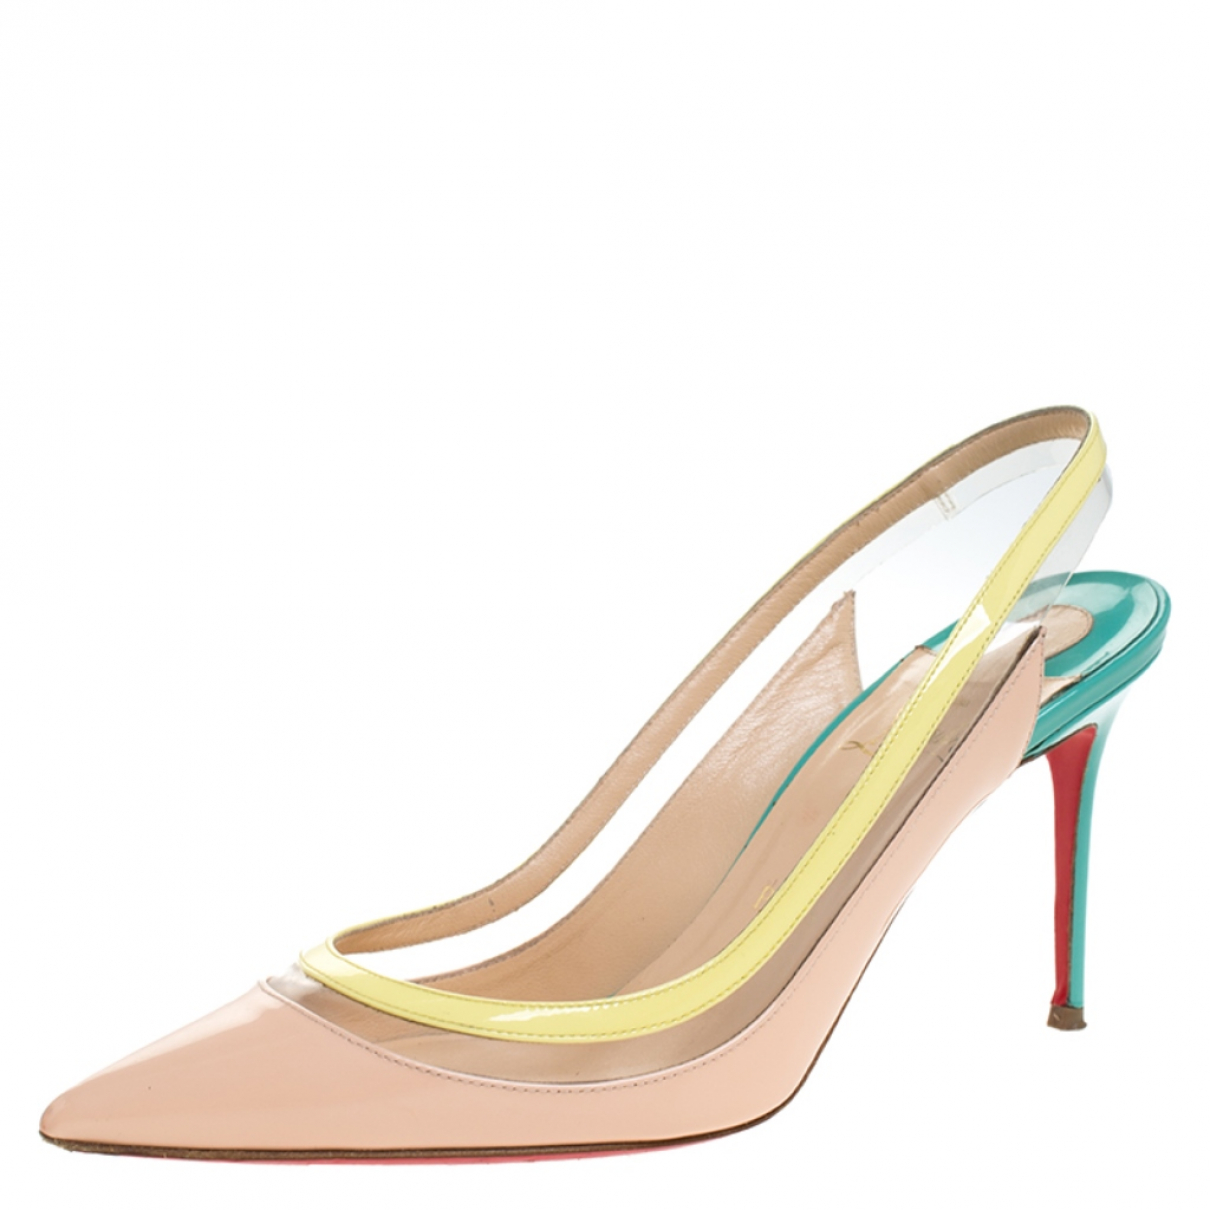 Christian Louboutin N Multicolour Patent leather Sandals for Women 7 US